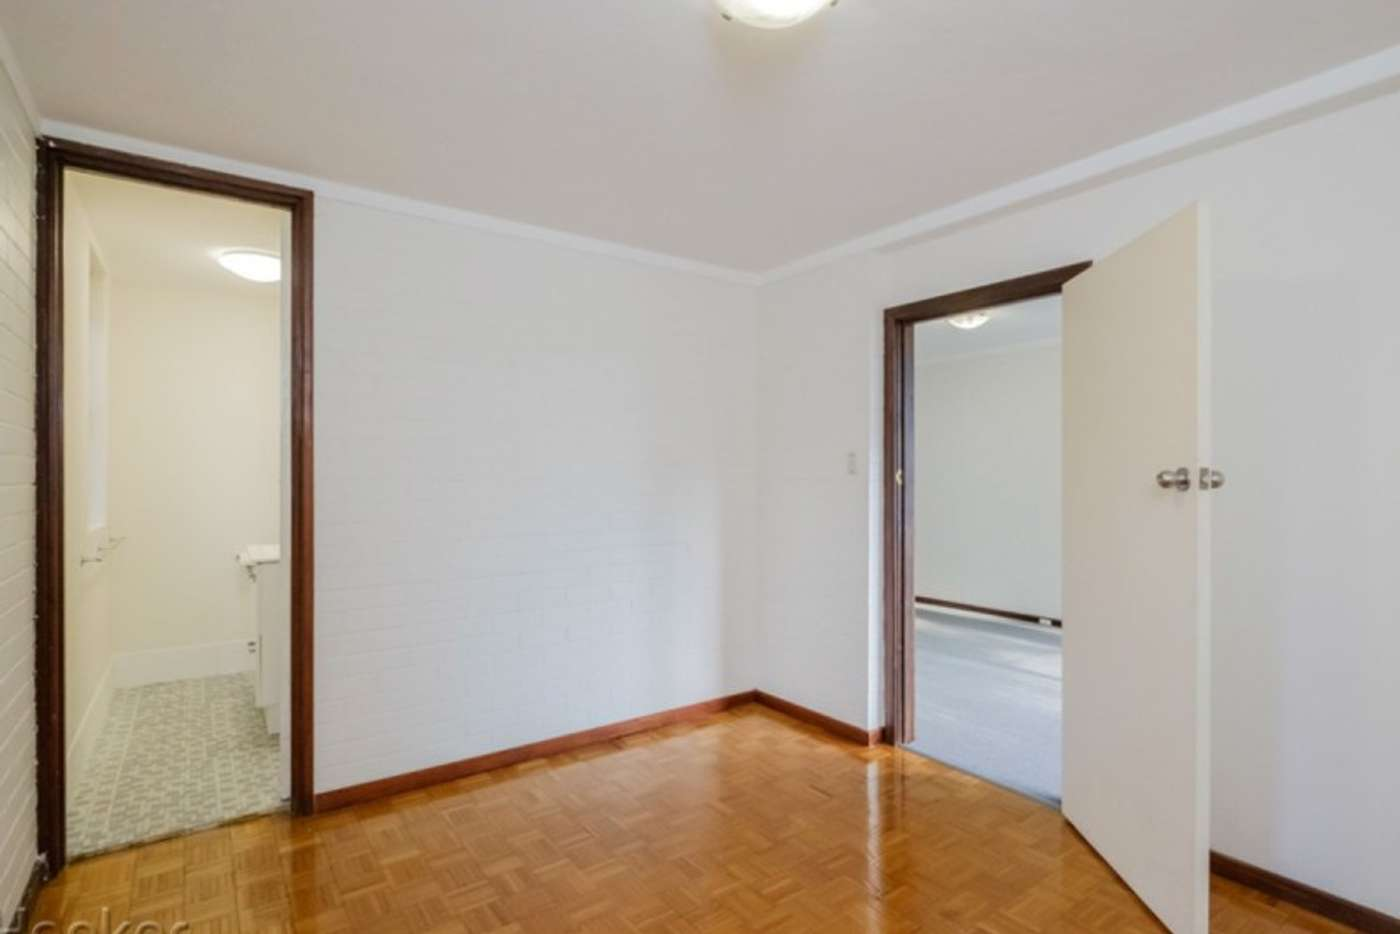 Sixth view of Homely apartment listing, 1/38 Waterloo Crescent, East Perth WA 6004